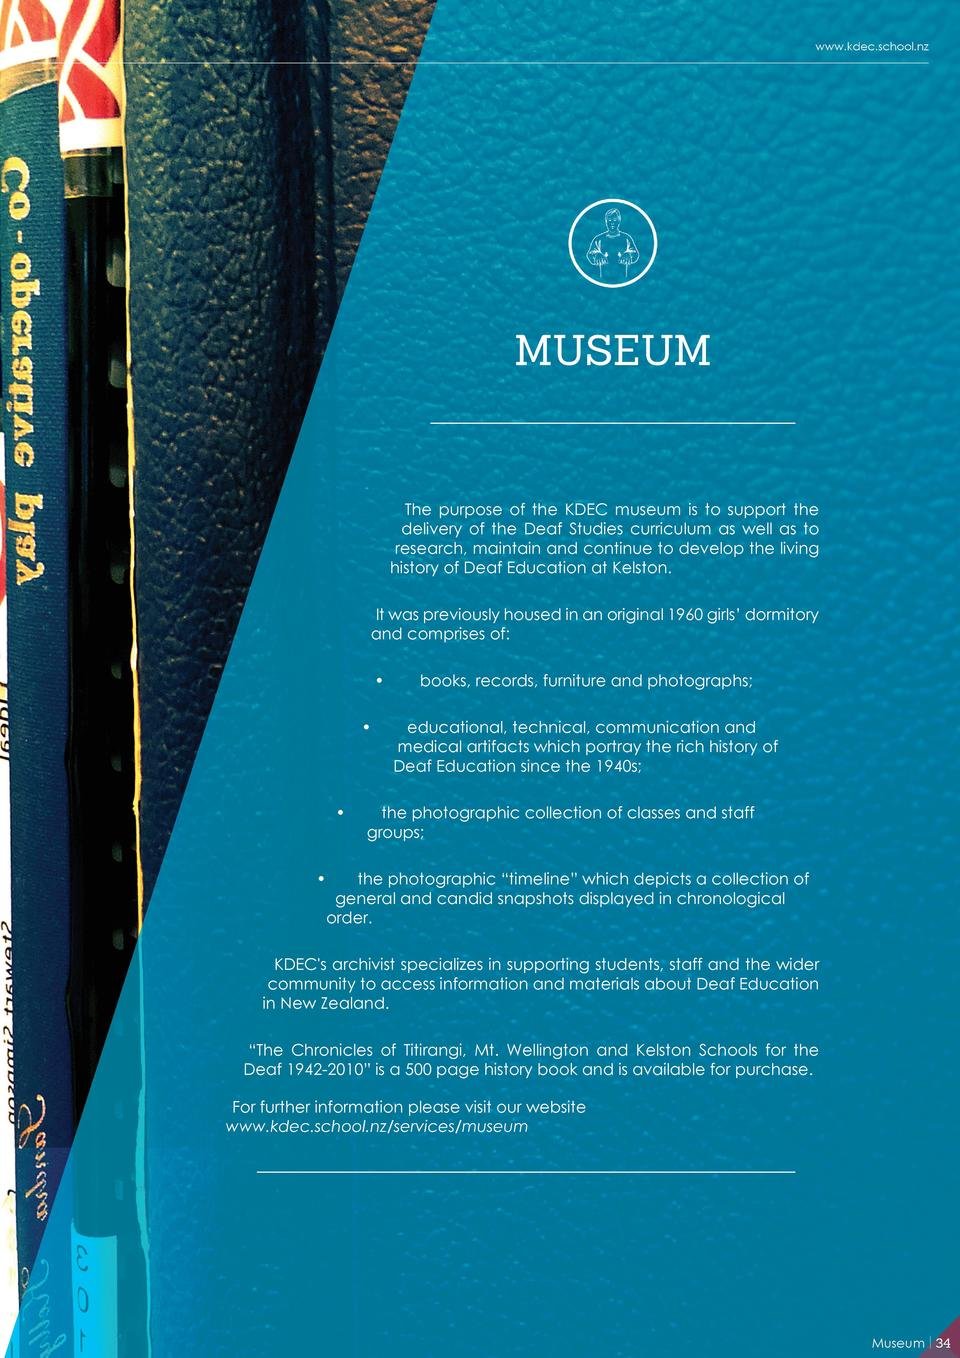 www.kdec.school.nz  MUSEUM  The purpose of the KDEC museum is to support the delivery of the Deaf Studies curriculum as we...